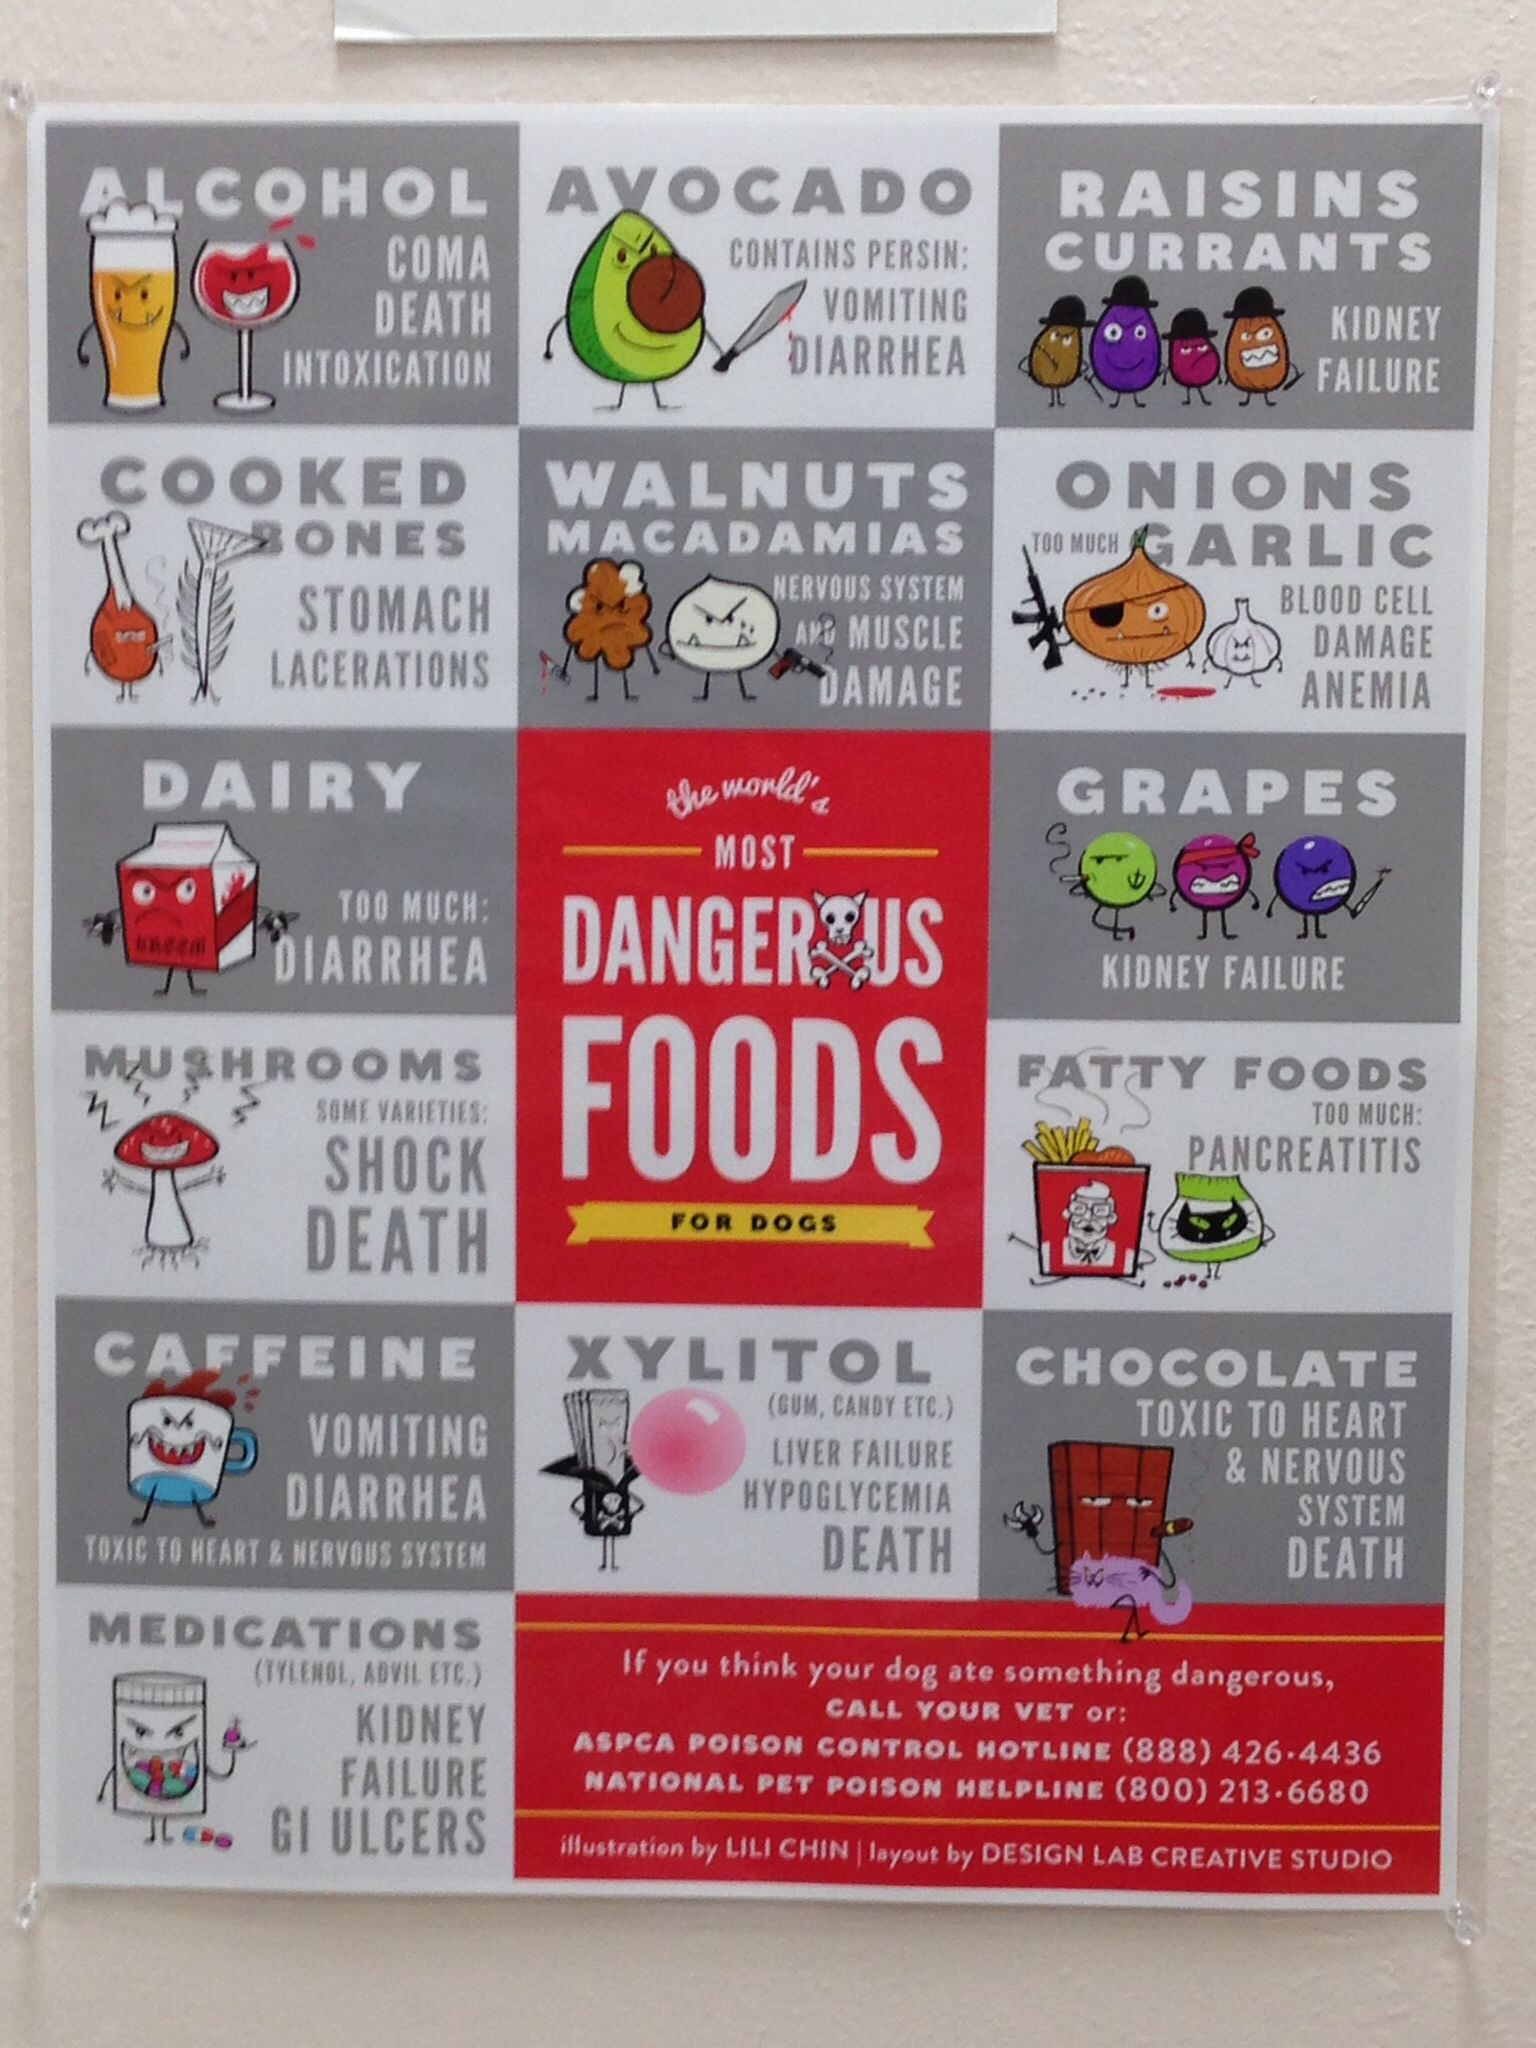 Not Good For Dogs Dangerous Foods For Dogs Dog Food Recipes